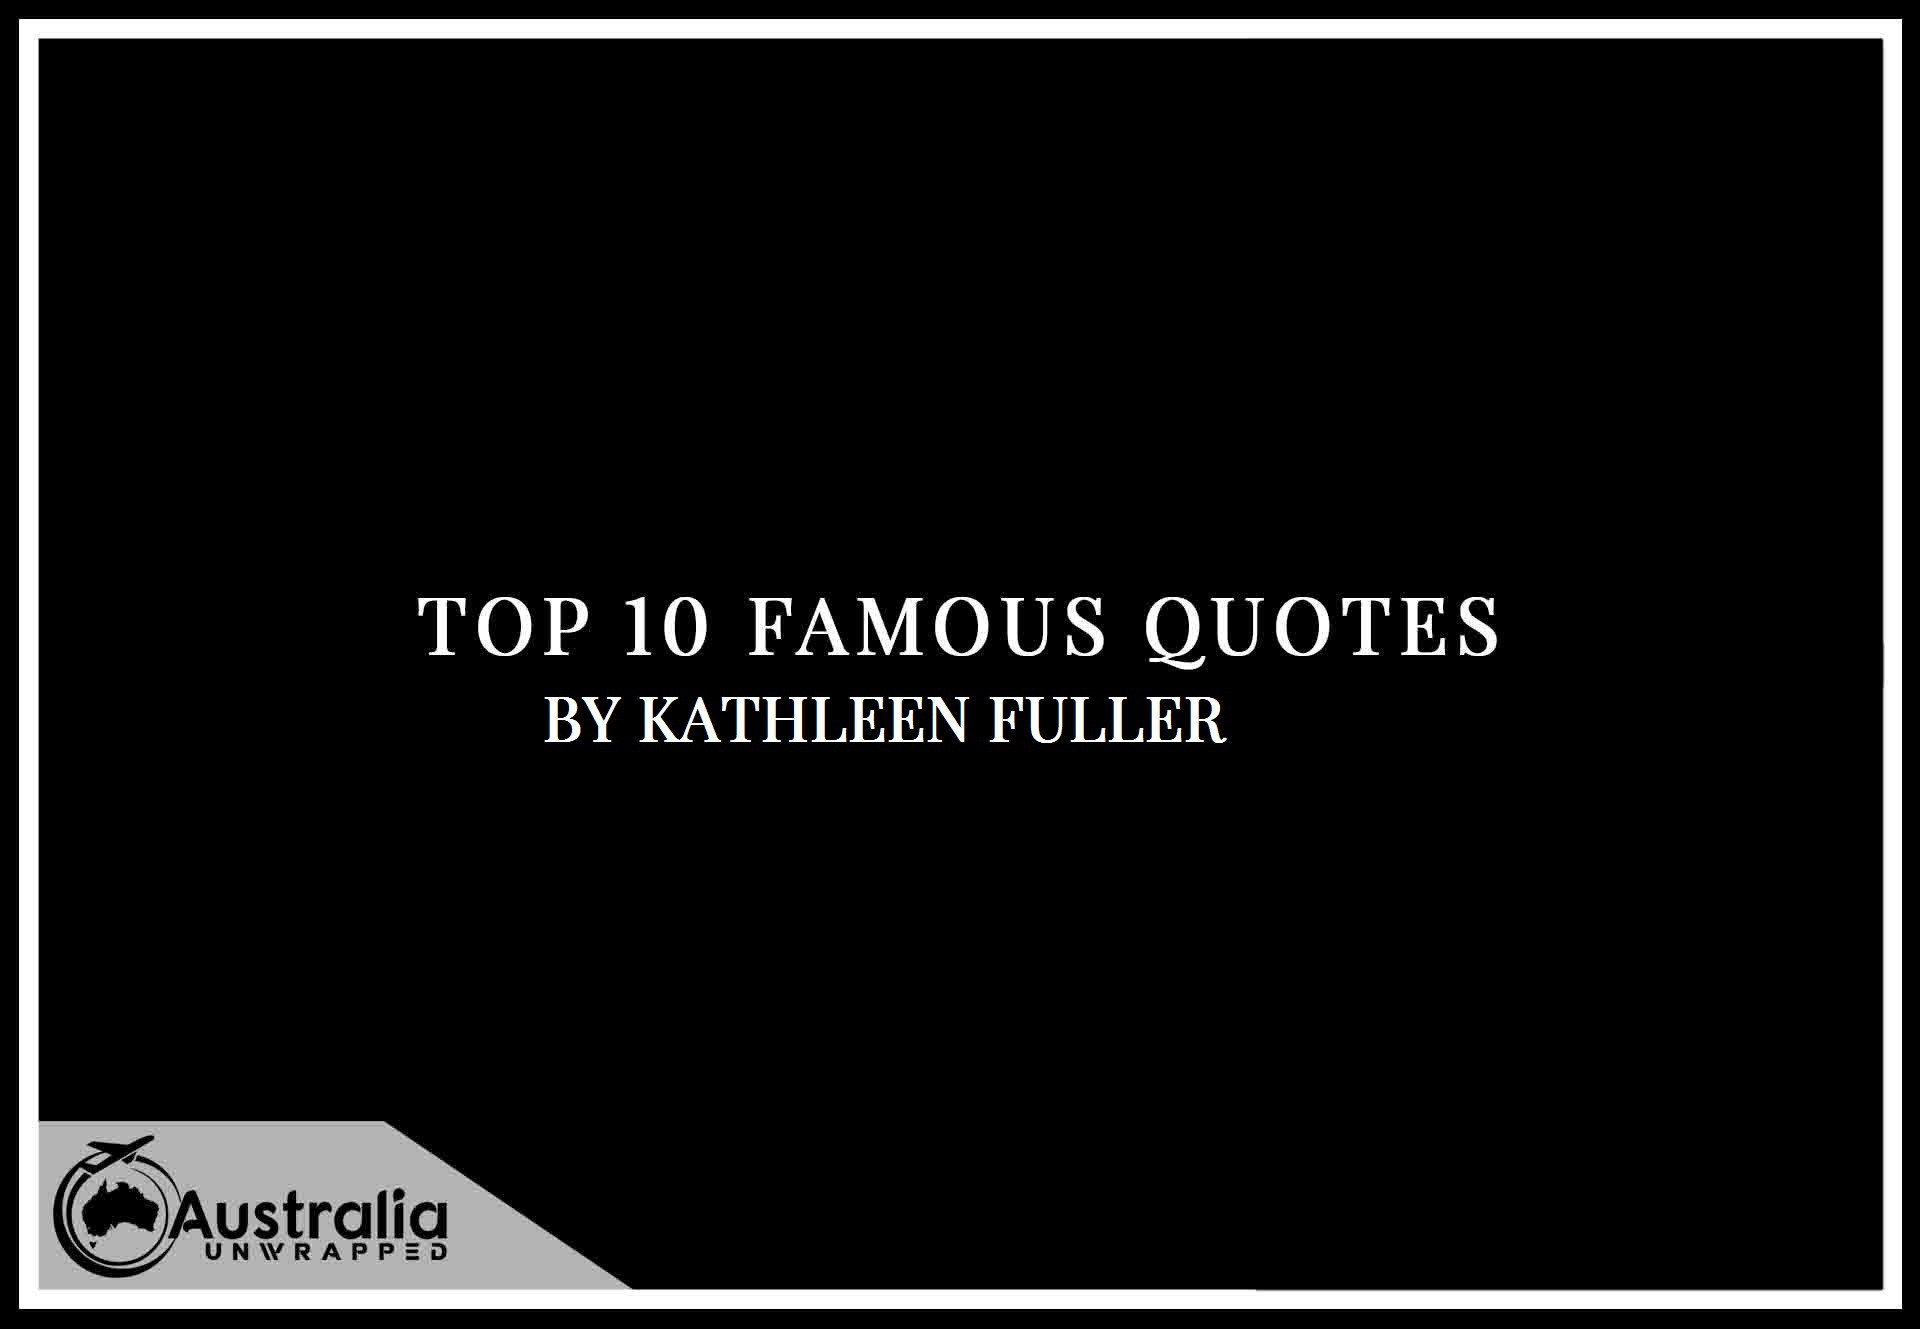 Kathleen Fuller's Top 10 Popular and Famous Quotes